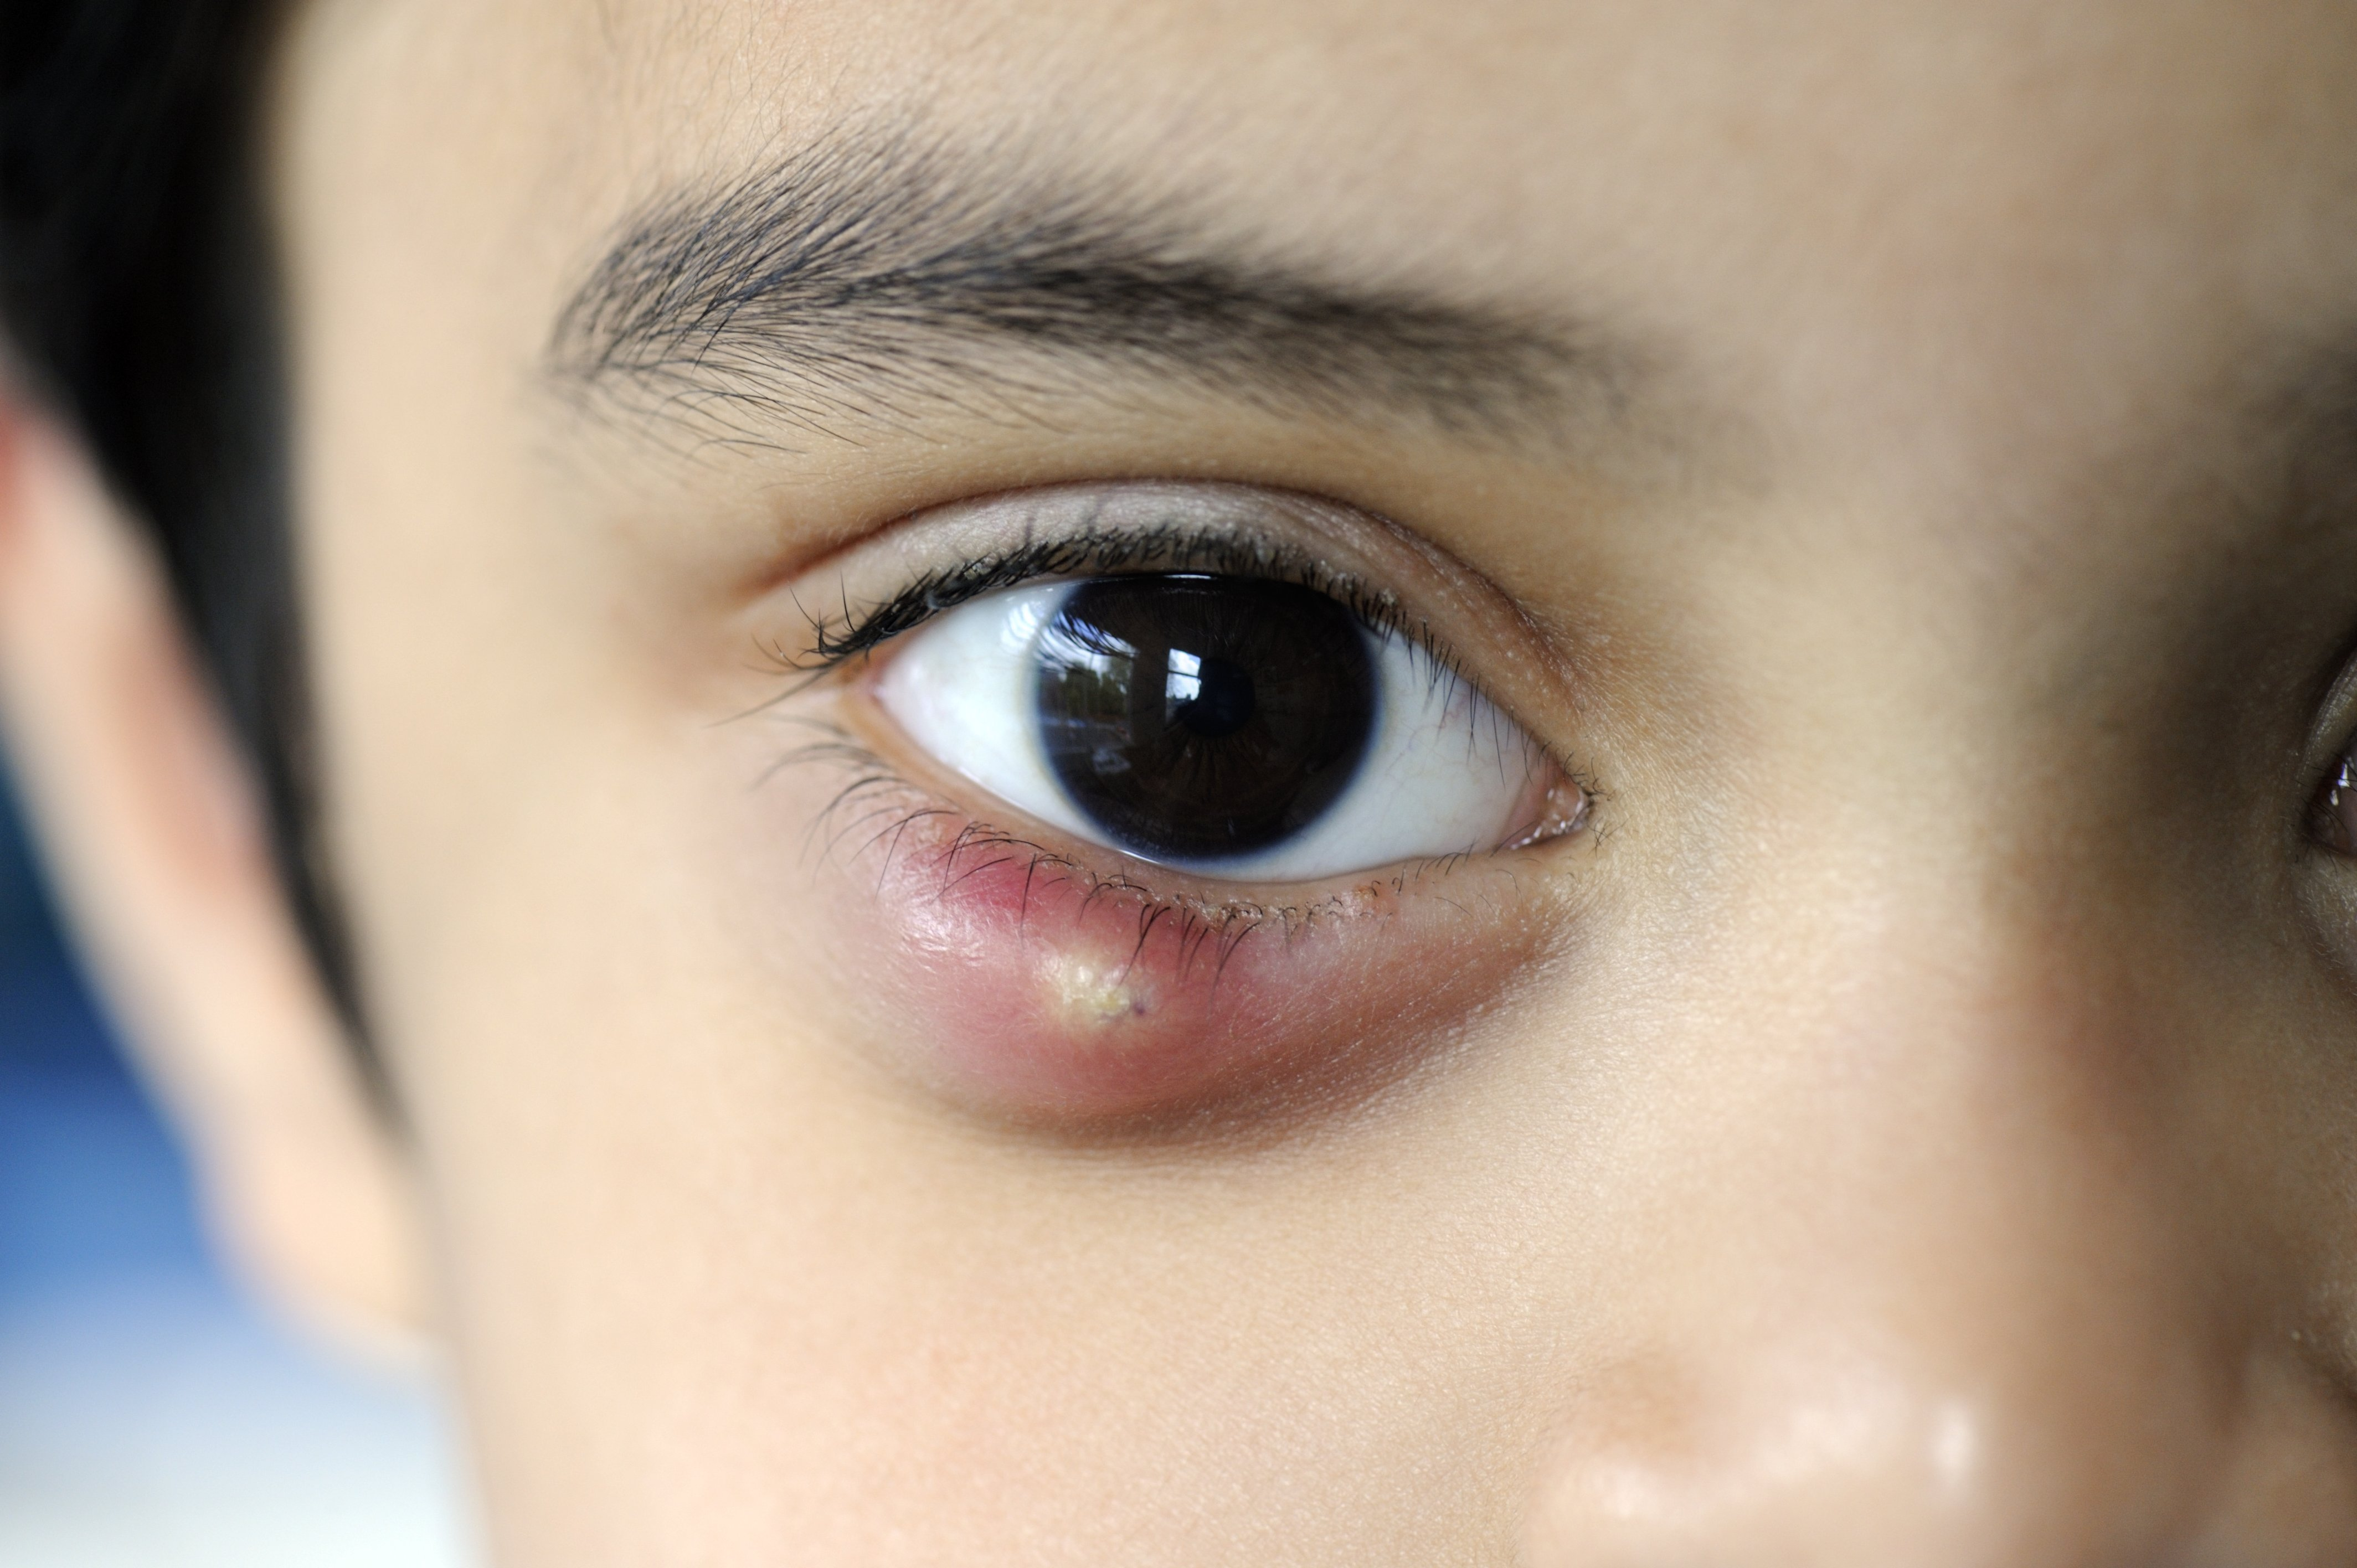 What produces a chalazion